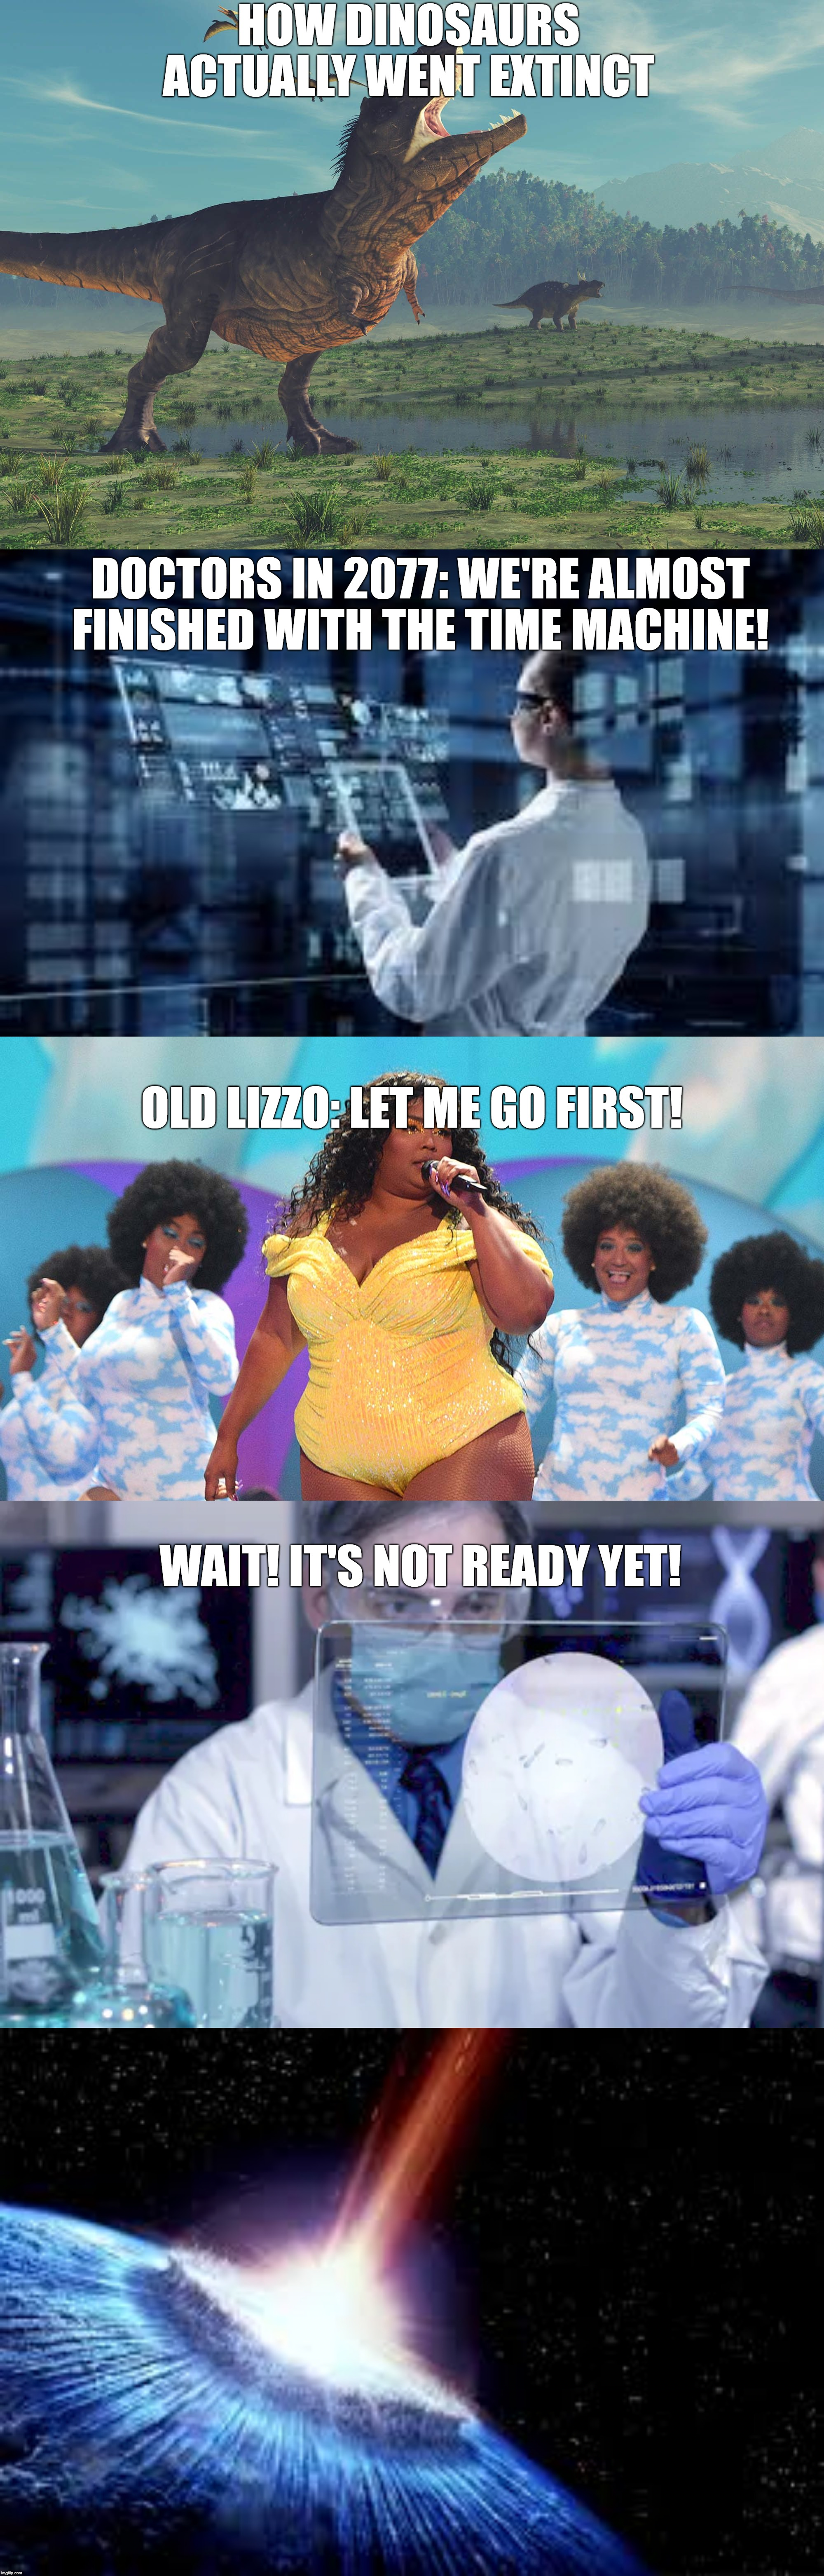 Old lizzo | HOW DINOSAURS ACTUALLY WENT EXTINCT DOCTORS IN 2077: WE'RE ALMOST FINISHED WITH THE TIME MACHINE! OLD LIZZO: LET ME GO FIRST! WAIT! IT'S NOT | image tagged in what would lizzo do,funny,memes,dinosaur,extinction,doctor | made w/ Imgflip meme maker